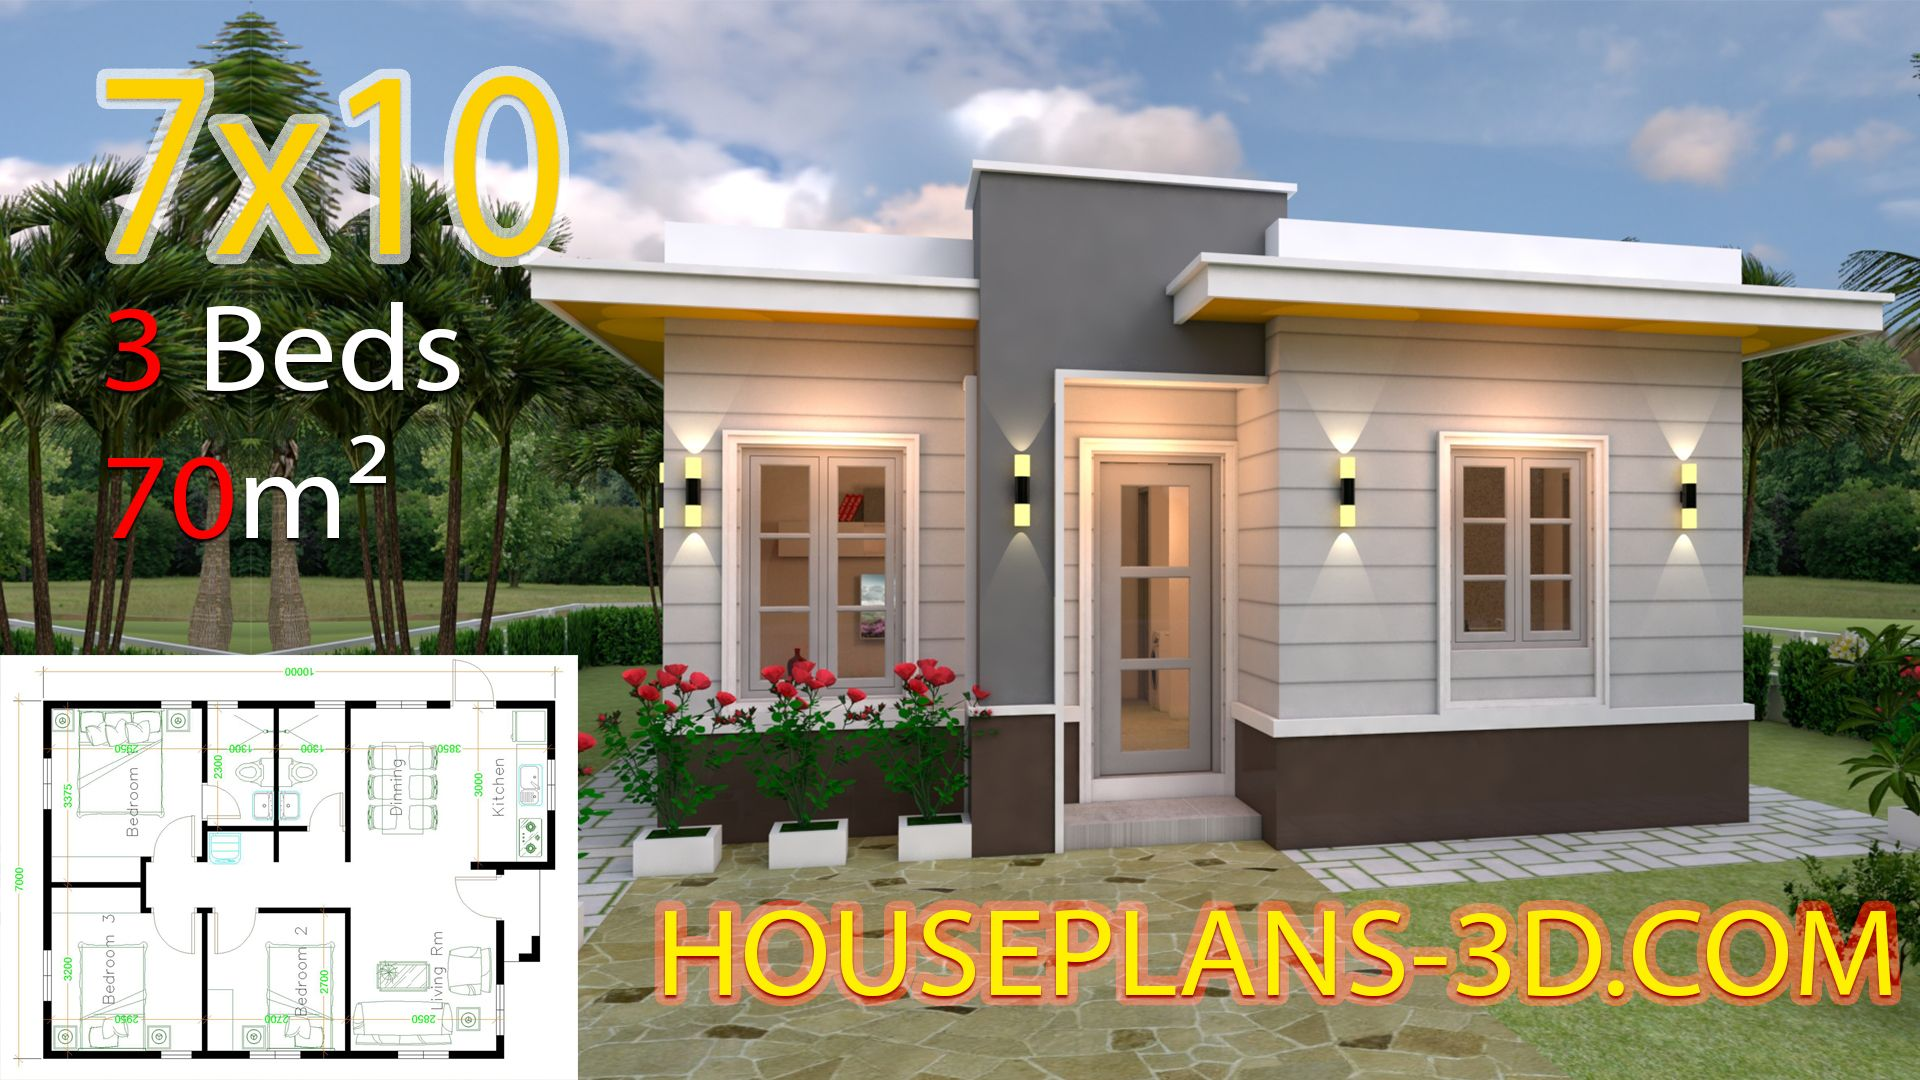 House Design 7x10 With 3 Bedrooms Terrace Roofthe House Has Car Parking And Garden Living Room Dining In 2020 Small House Design Plans House Plans Small House Design